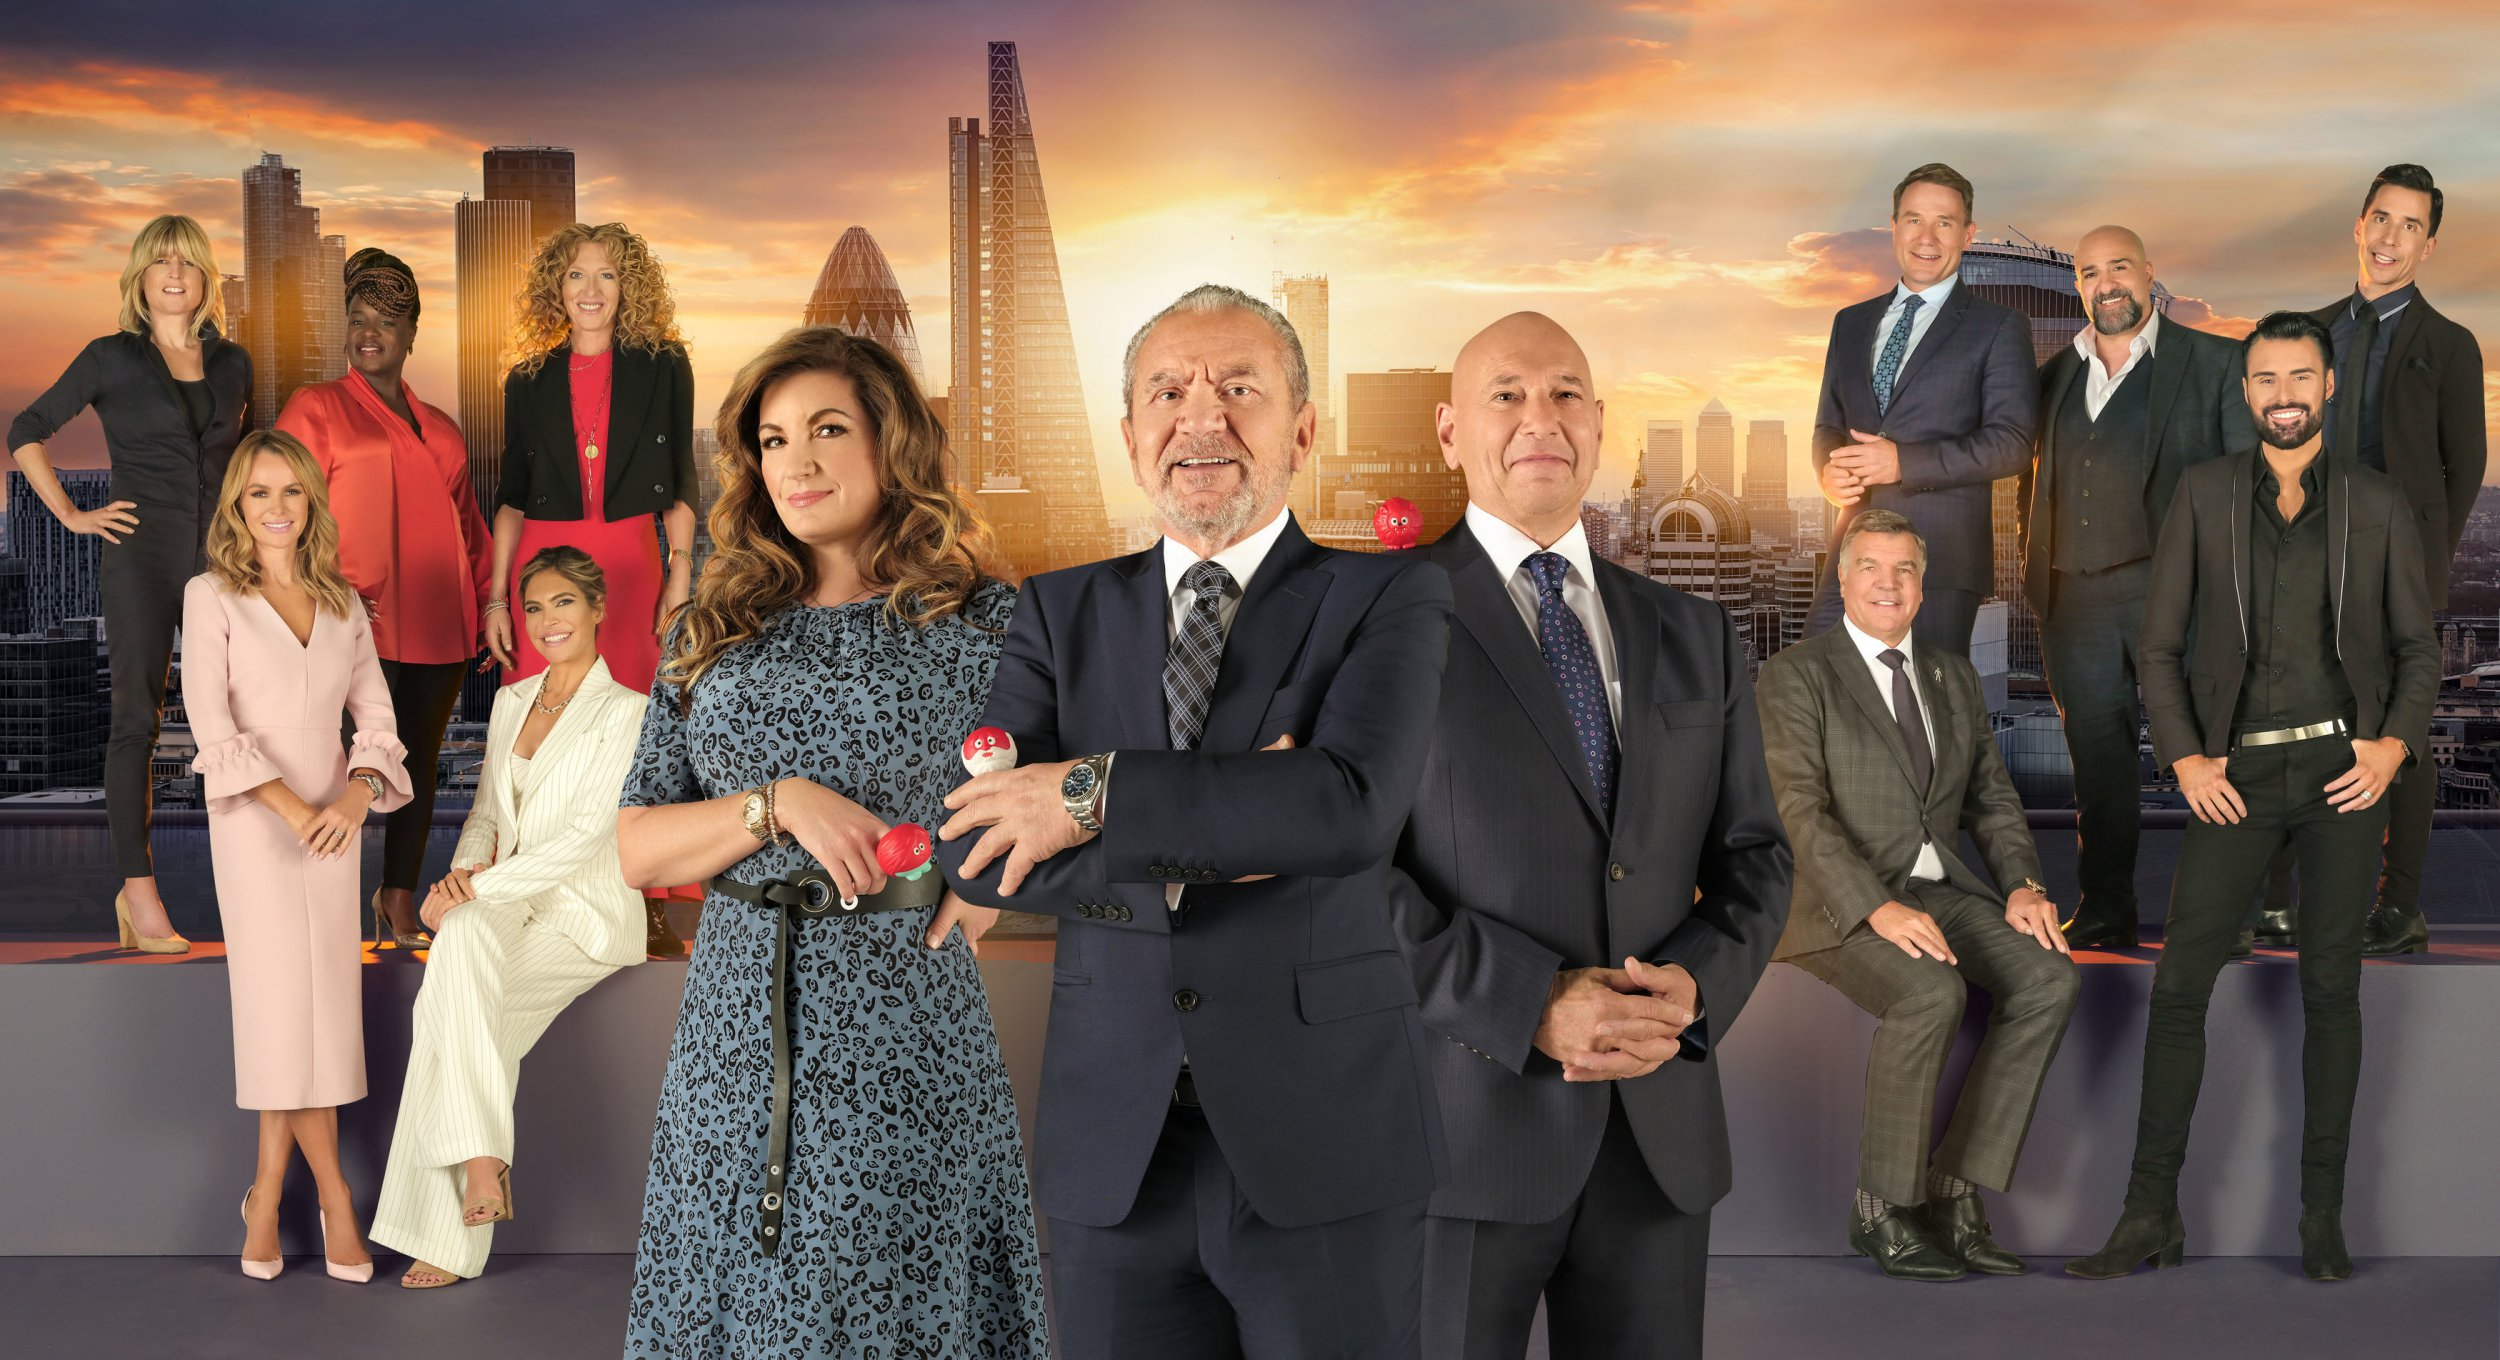 EMBARGOED TO 0001 TUESDAY FEBRUARY 26 For use in UK, Ireland or Benelux countries only Undated BBC handout photo of (left to right) Baroness Brady, Lord Sugar and Claude Littner in front of the candidates (back row left to right) Rachel Johnson, Tamkeka Empson, Kelly Hoppen, Richard Arnold, Omid Djalili, Russell Kane, (front row left to right) Amanda Holden, Ayda Williams, Sam Allardyce and Rylan Clark-Neal , from Celebrity Apprentice for Comic Relief. PRESS ASSOCIATION Photo. Issue date: Tuesday February 26, 2019. See PA story SHOWBIZ Allardyce. Photo credit should read: BBC/Comic Relief/PA Wire NOTE TO EDITORS: Not for use more than 21 days after issue. You may use this picture without charge only for the purpose of publicising or reporting on current BBC programming, personnel or other BBC output or activity within 21 days of issue. Any use after that time MUST be cleared through BBC Picture Publicity. Please credit the image to the BBC and any named photographer or independent programme maker, as described in the caption.